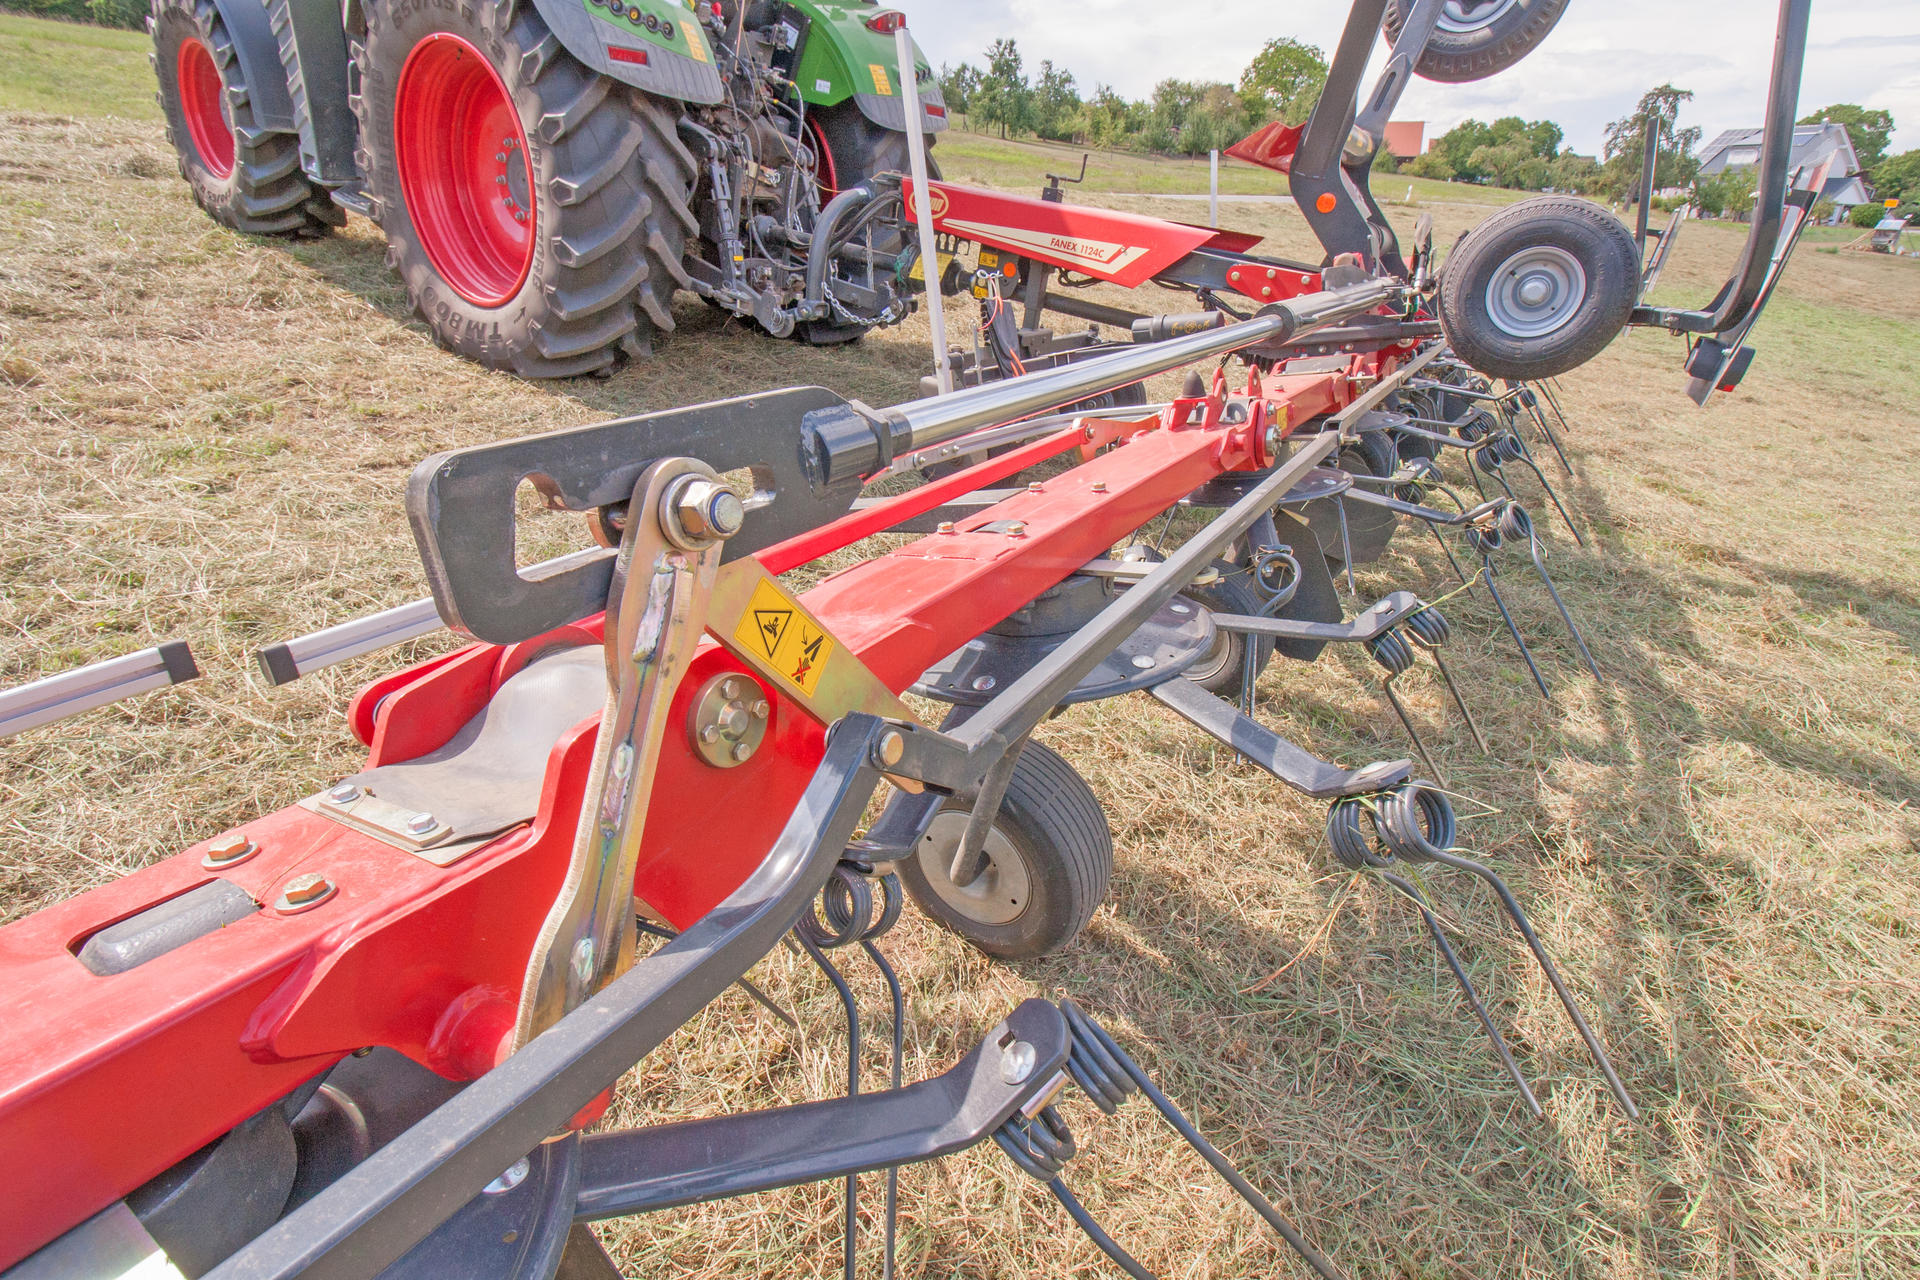 Vicon Fanex 904c 1124c New Carrier Frame Tedders Rakes And Control System For An On 424 International Tractor Hydraulics Diagram Vi Fanex1124c 17 Cover